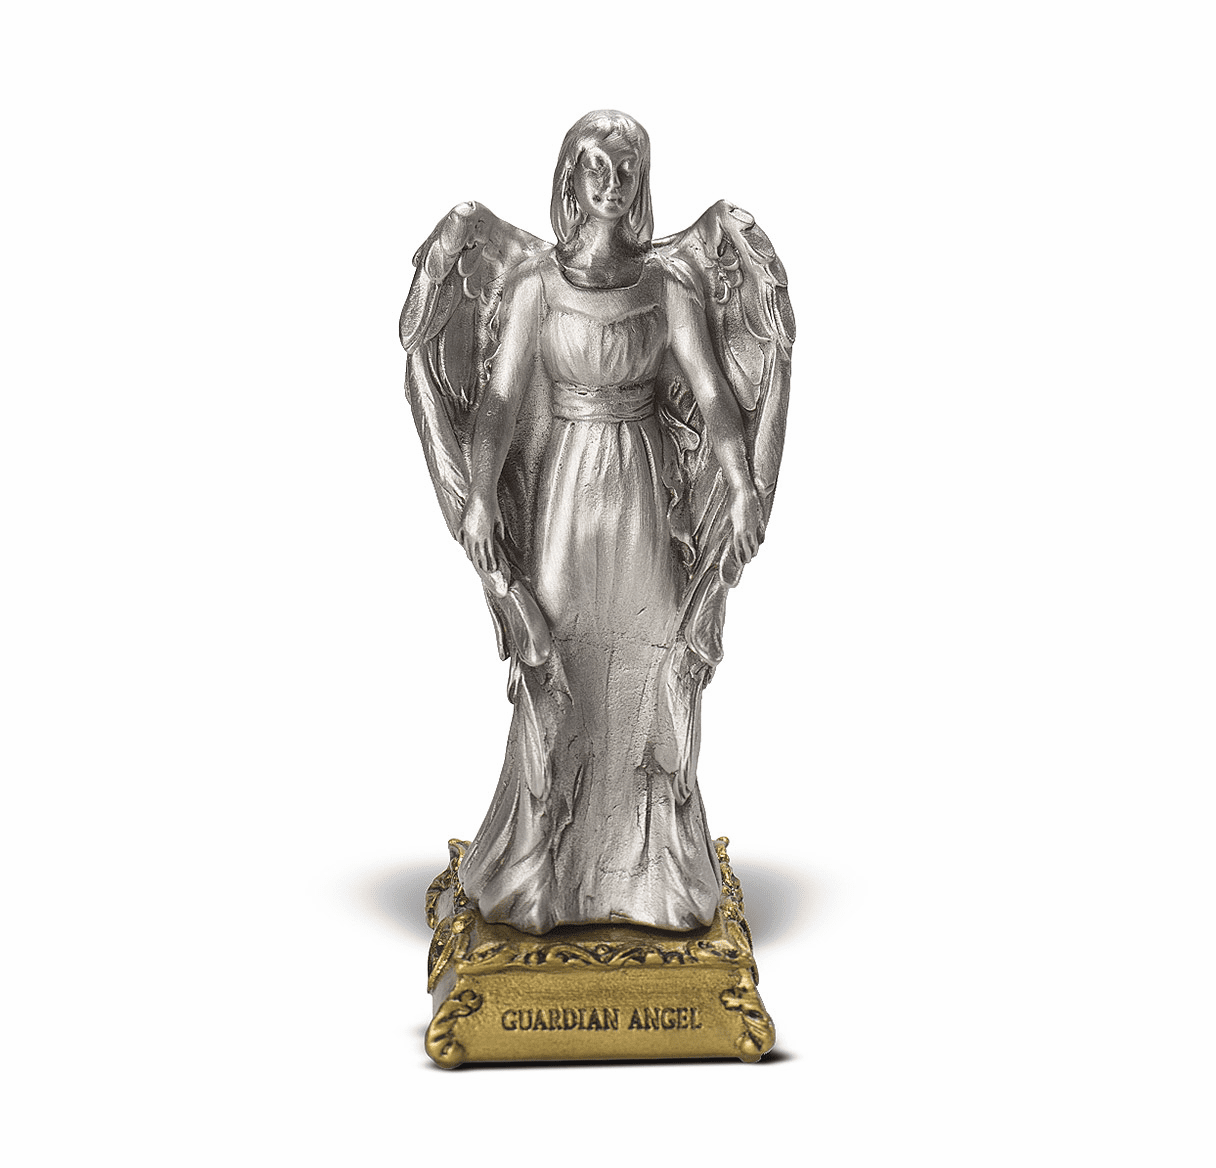 Guardian Angel Pewter Statue on Gold Tone Base by Hirten